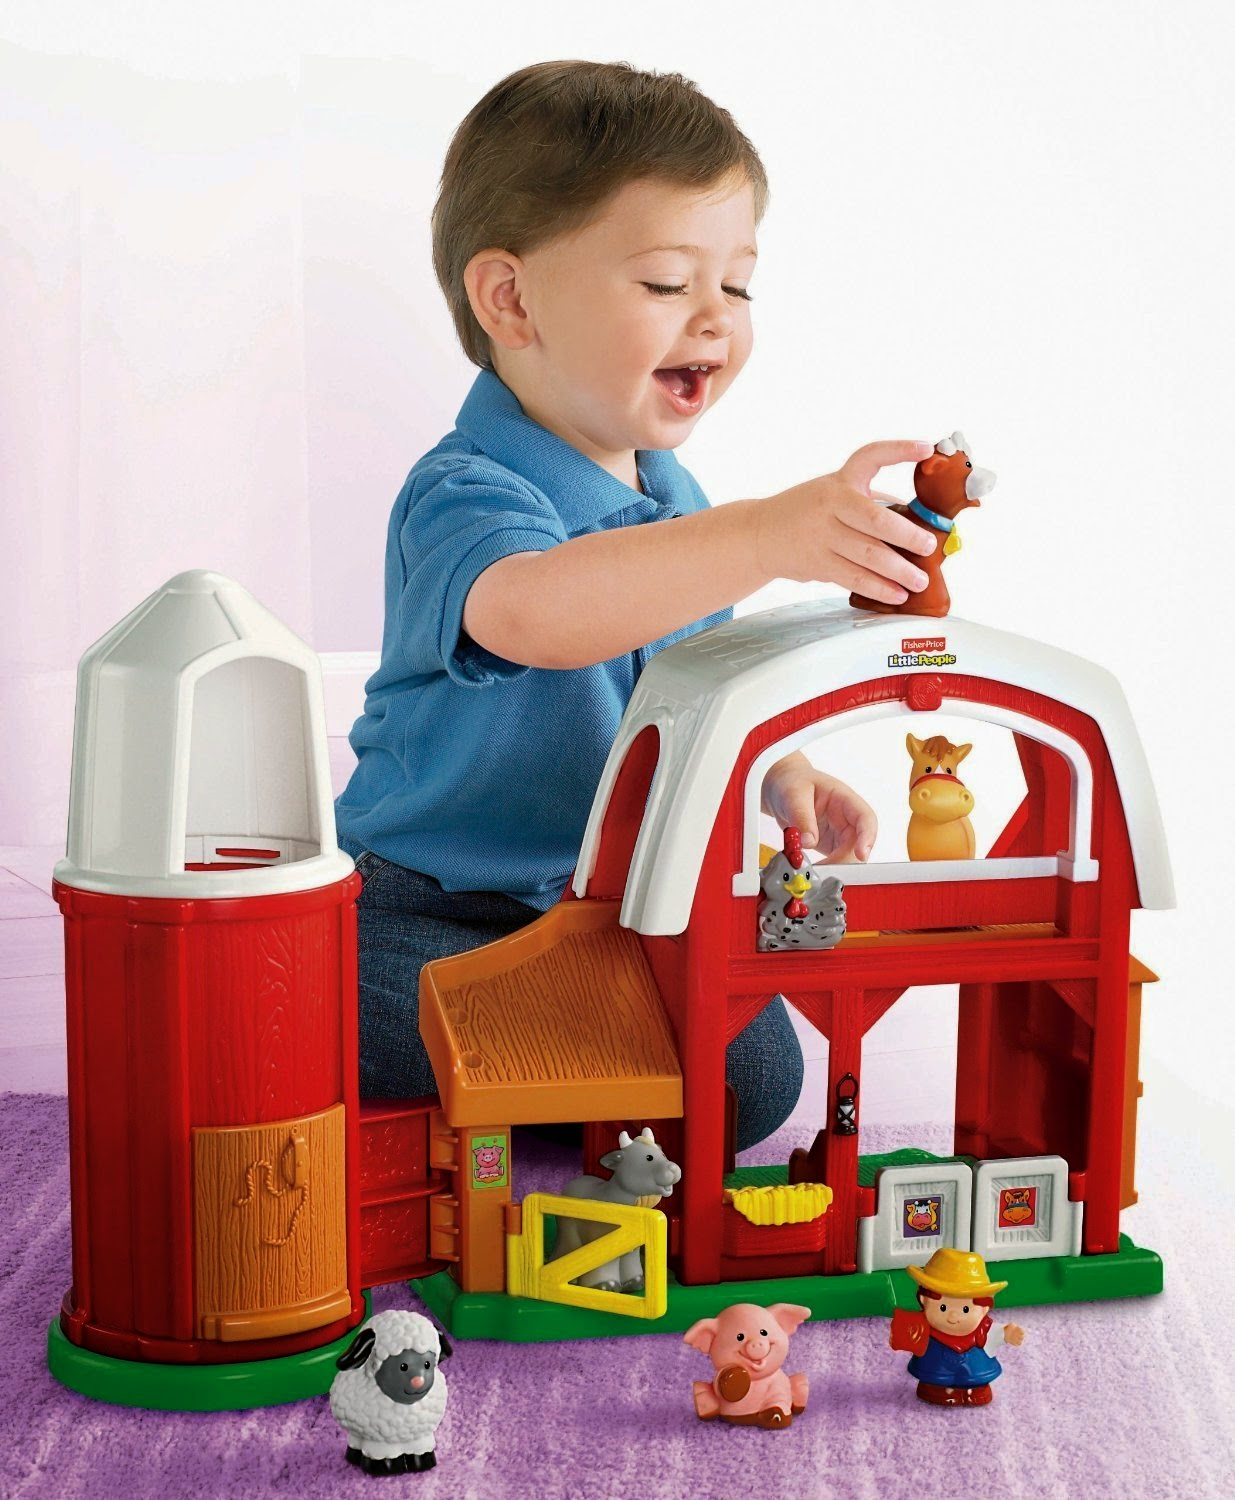 CASA CICAK'S TOP CHILDREN'S GIFTS: Best Toddler Toys for 2 ...